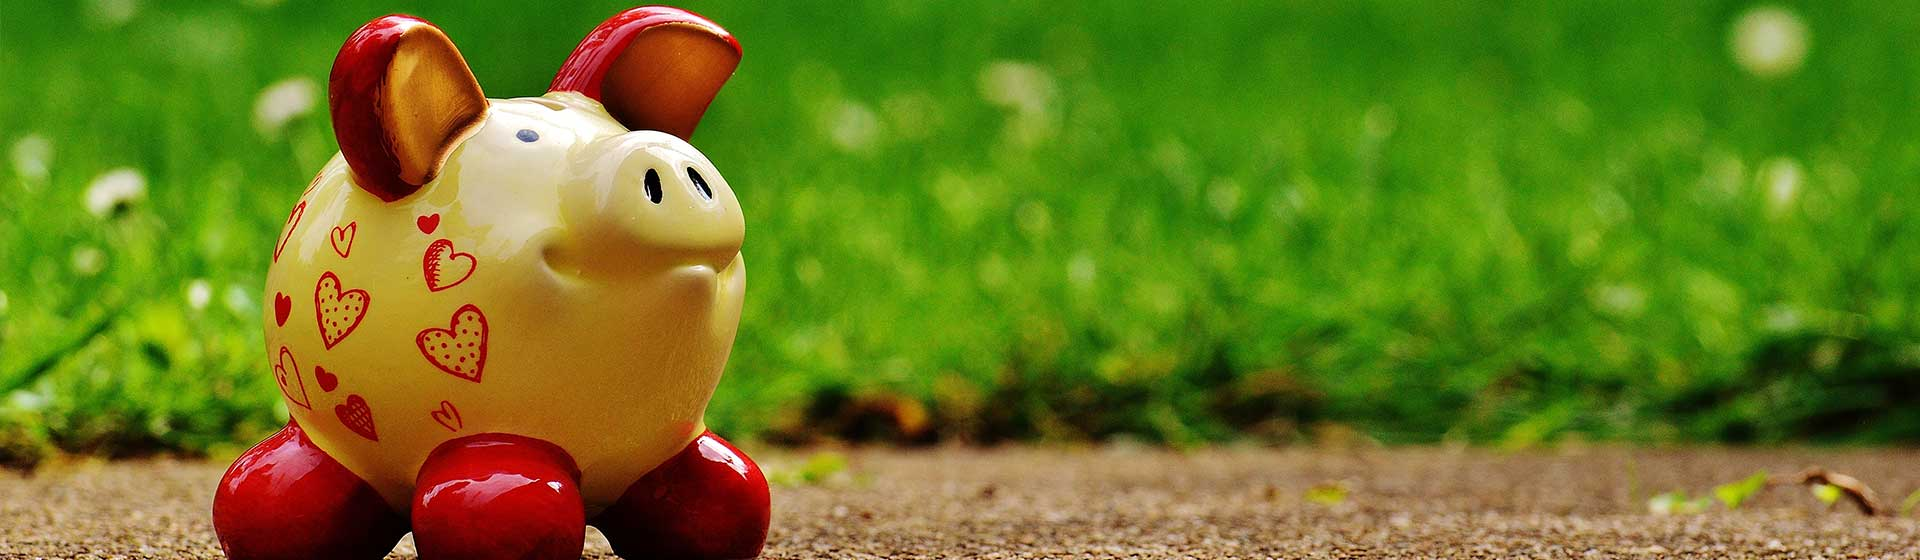 Ceramic piggy bank against a green grass background